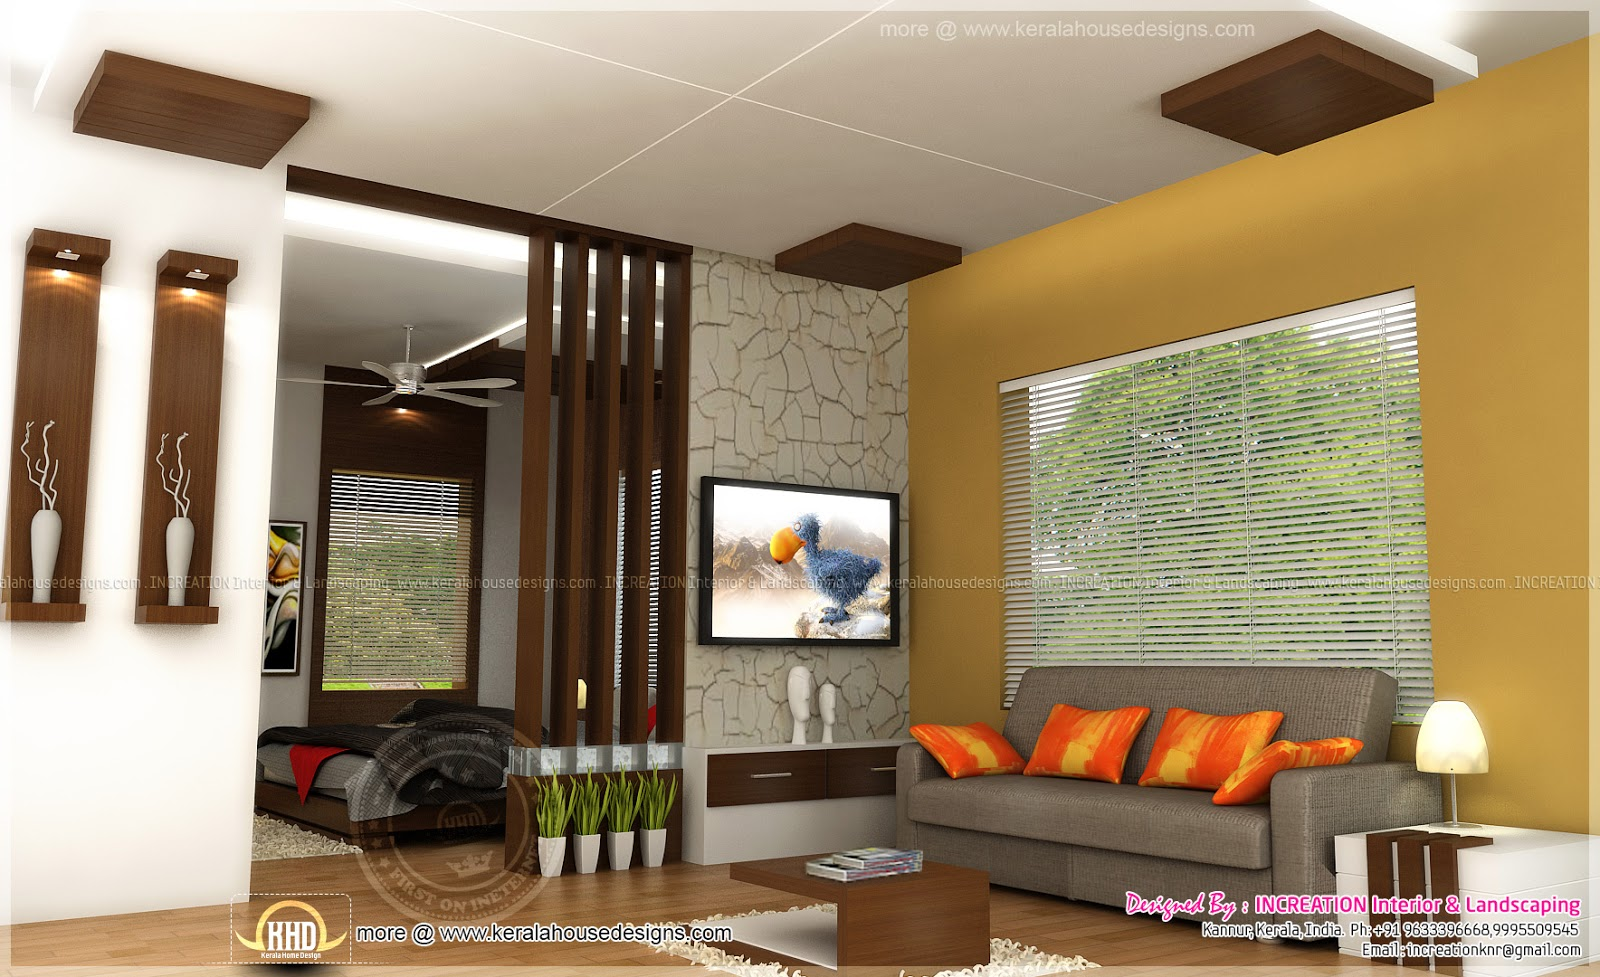 Interior designs from kannur kerala kerala home design Interior house plans